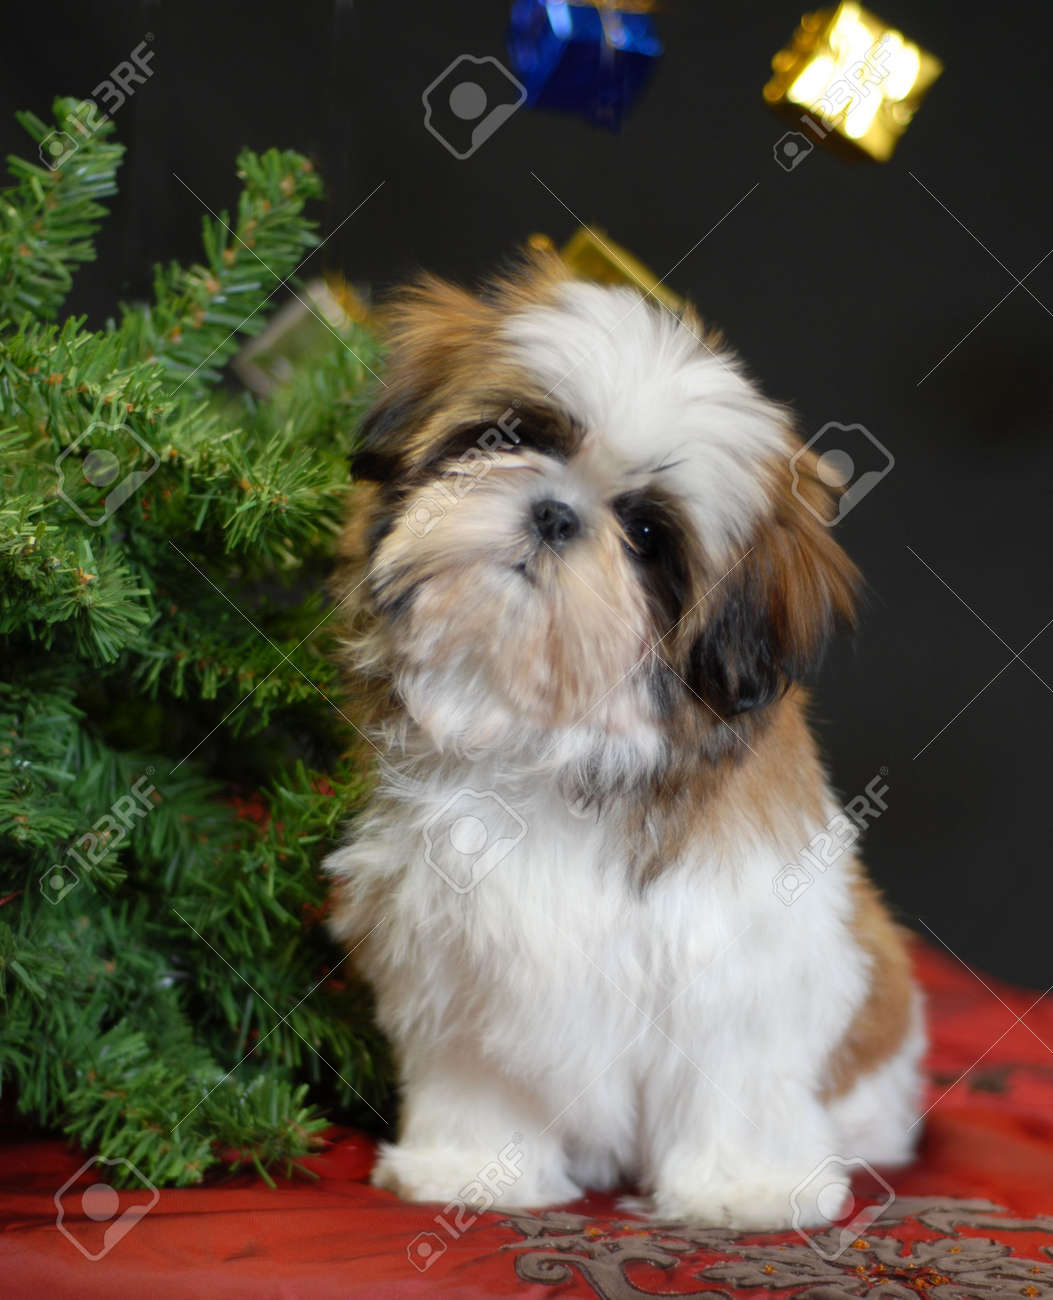 Shih Tzu Puppy Sitting Beside Christmas Tree Stock Photo Picture And Royalty Free Image Image 3724520